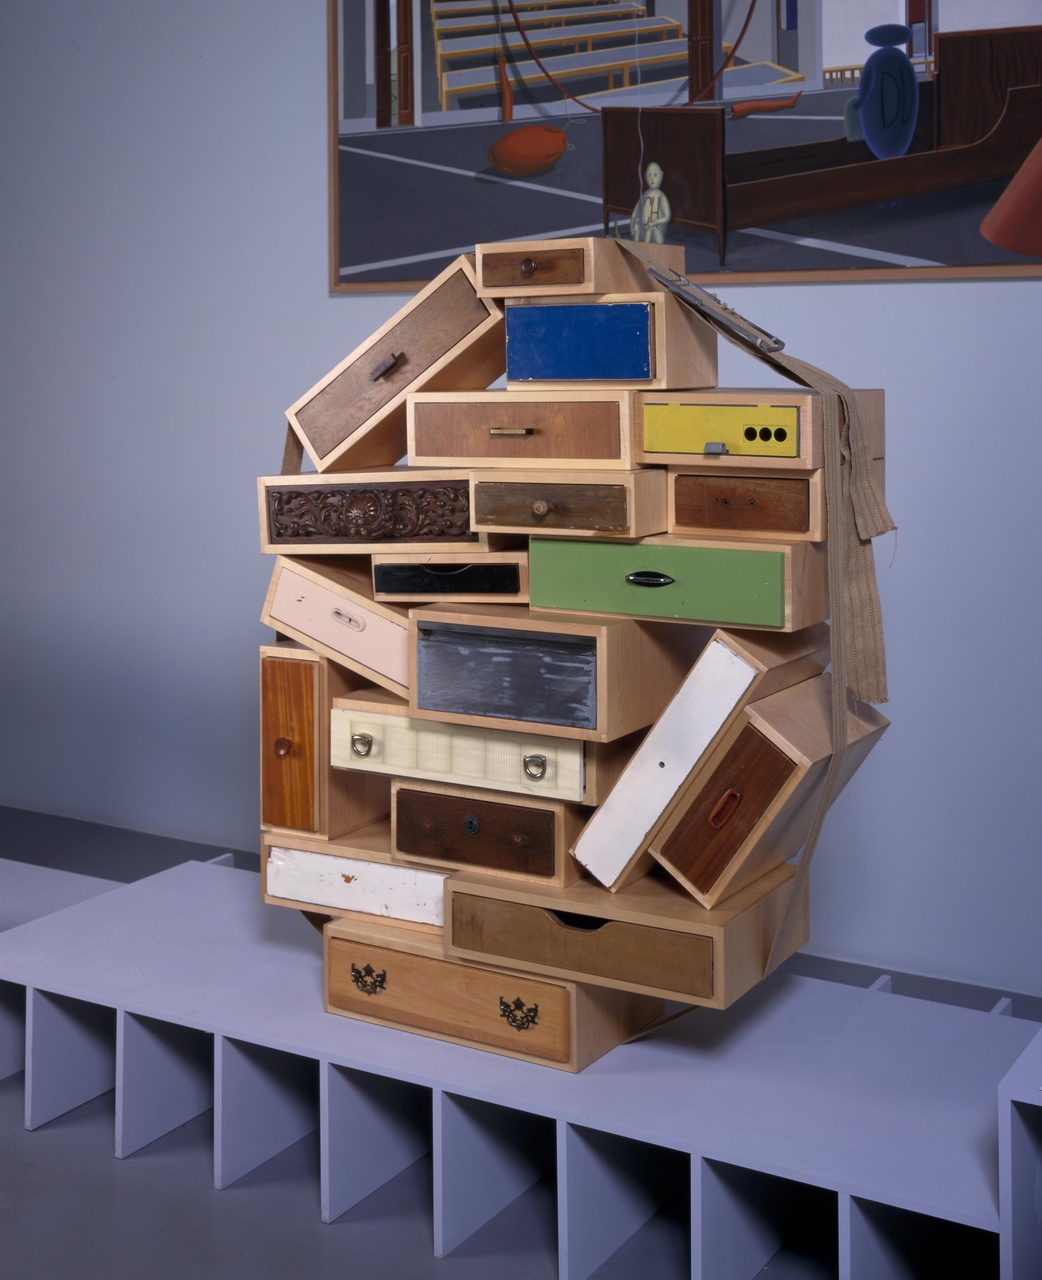 Chest of Drawers 'You can't lay down your memory'